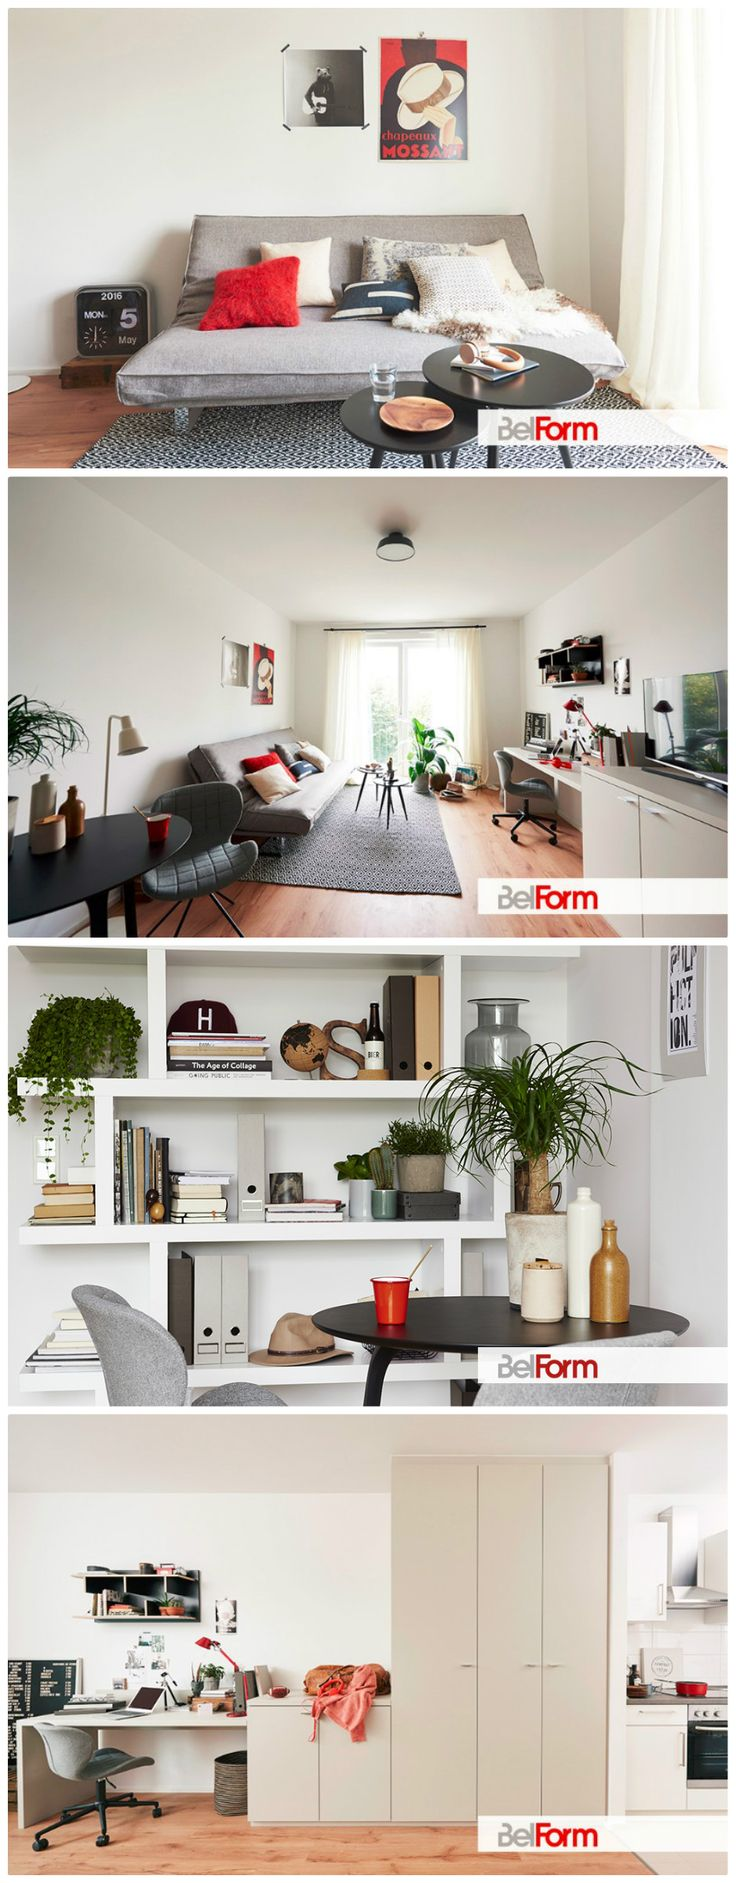 Student accommodation in Berlin